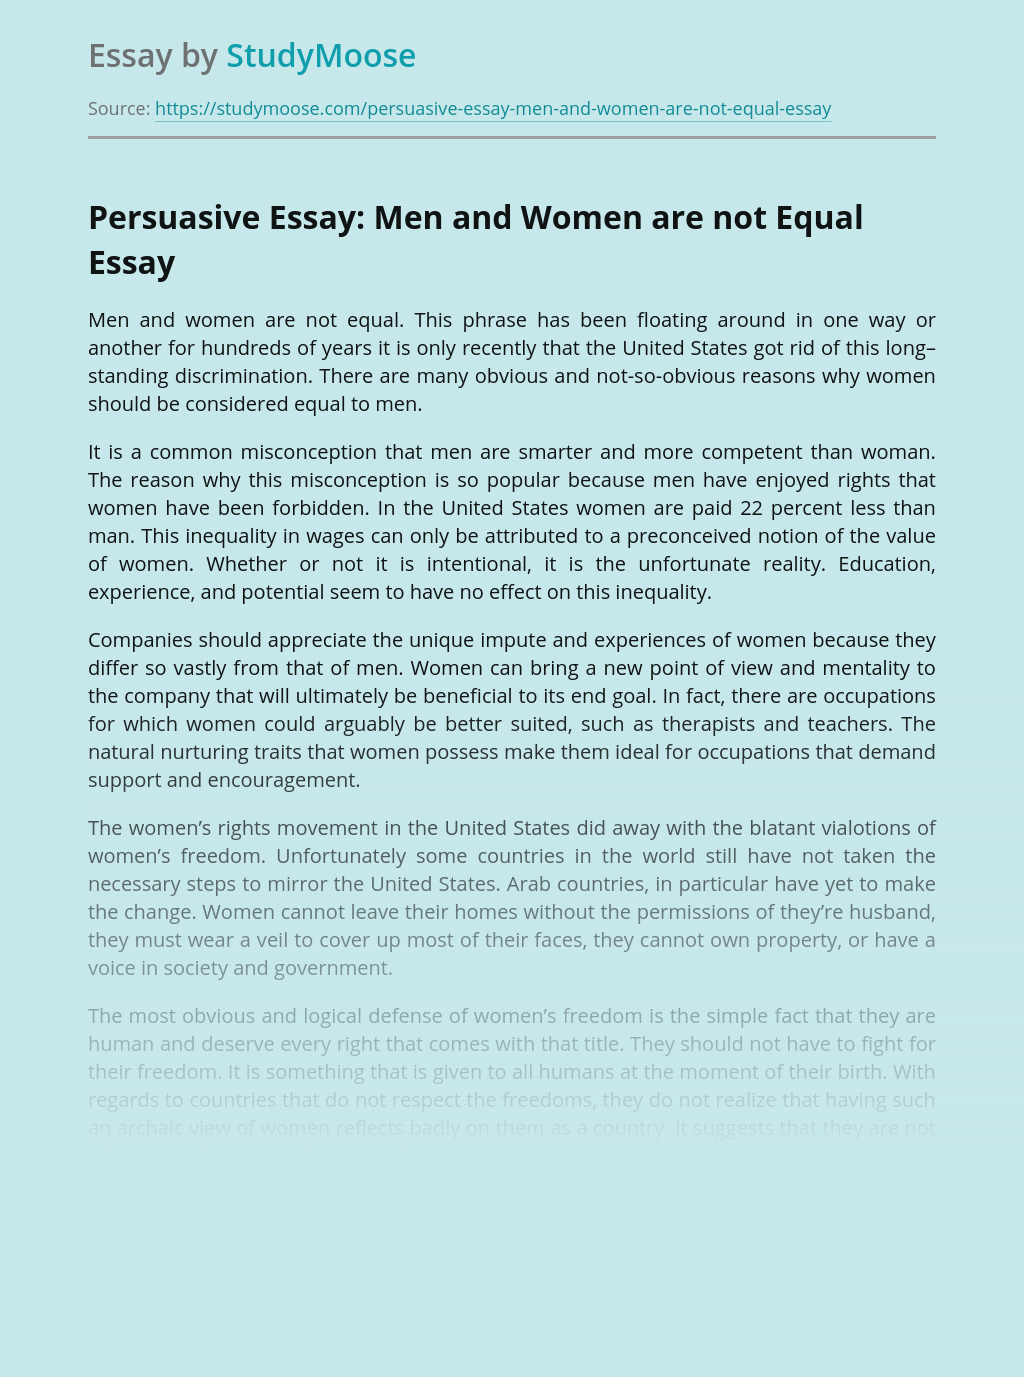 Persuasive Essay: Men and Women are not Equal